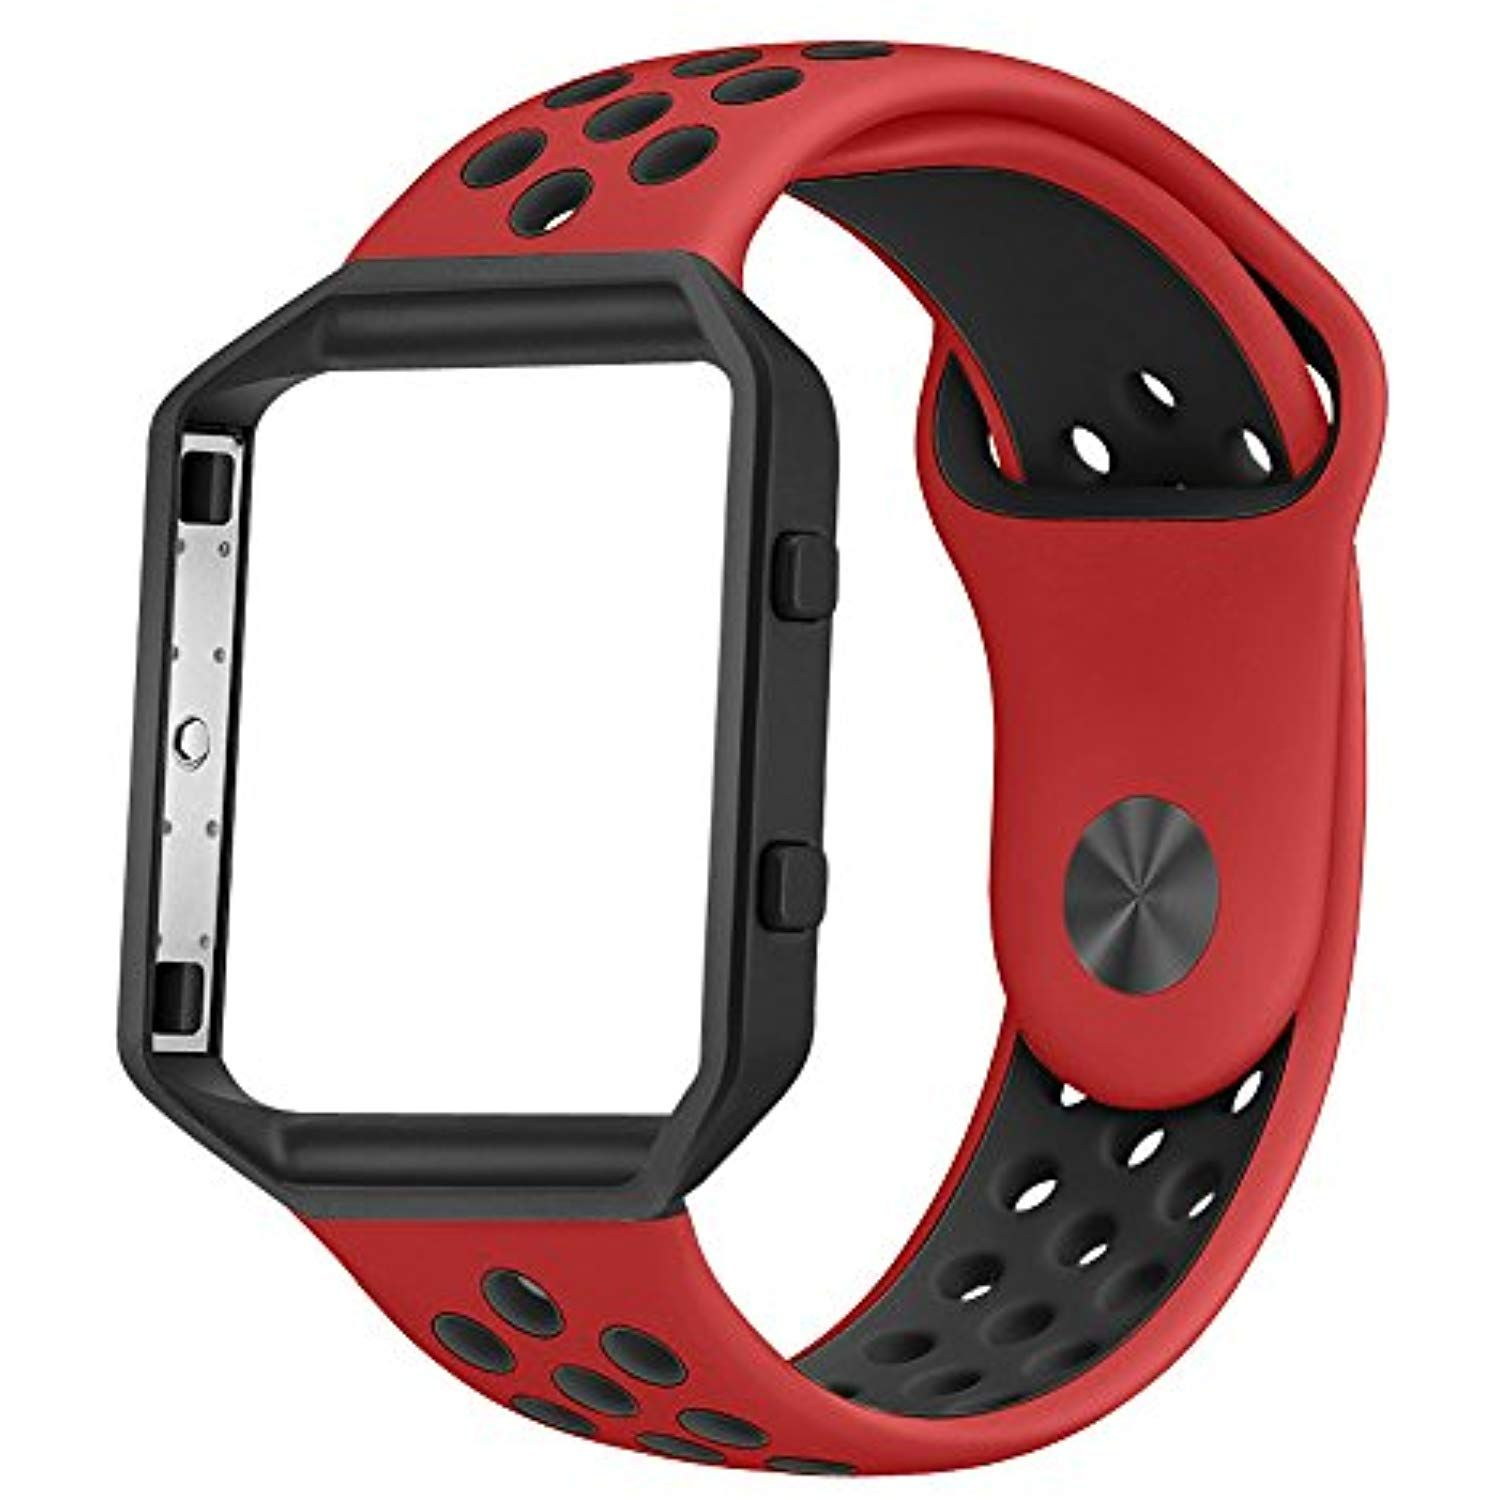 UMTELE For Fitbit Blaze Bands, Sport Silicone Replacement